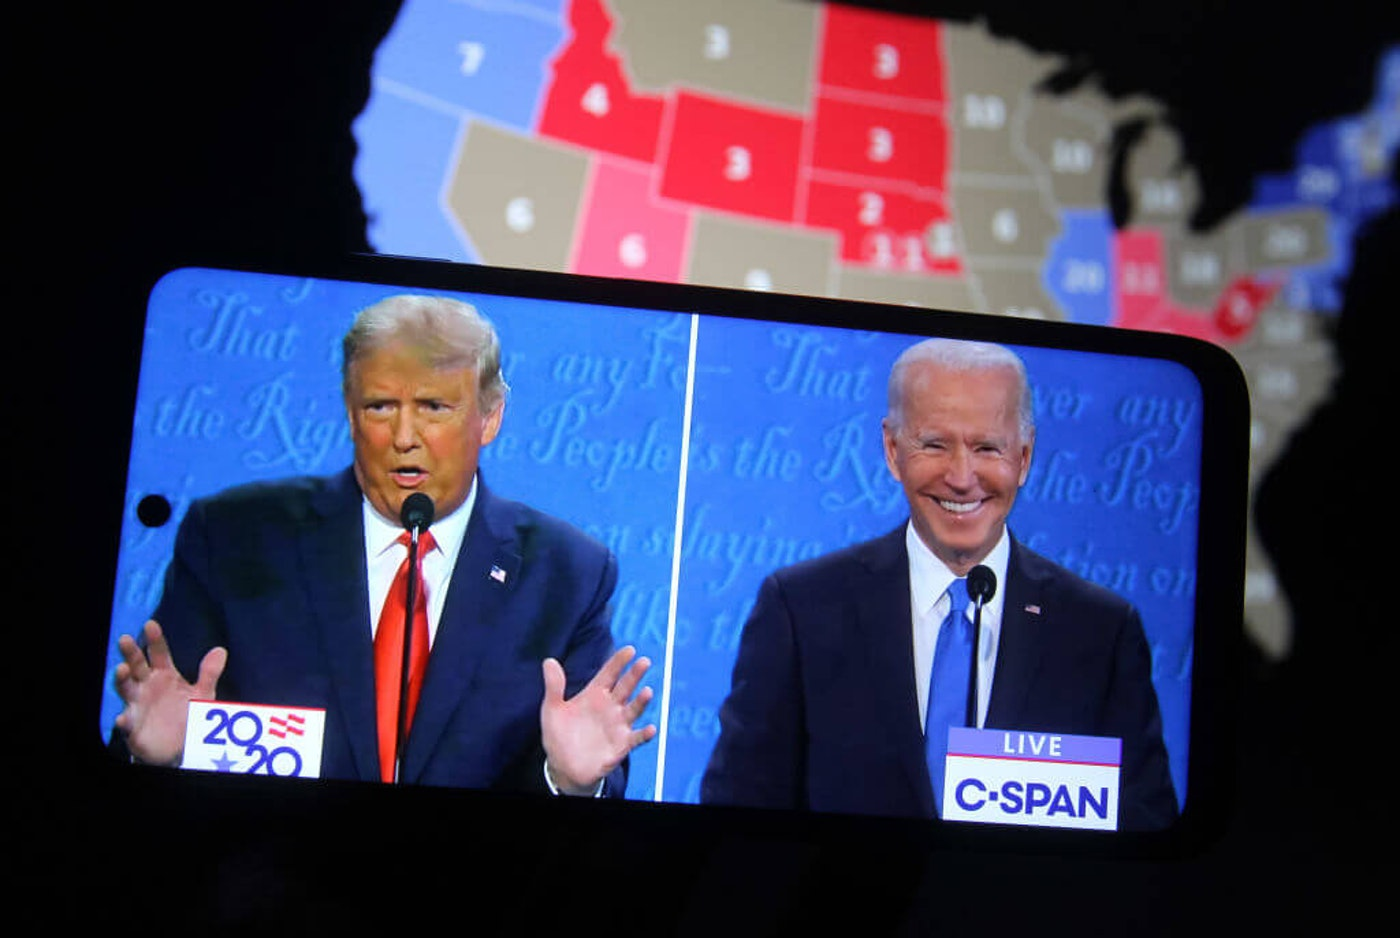 The final presidential debate between President Donald Trump and former Vice President Joe Biden took place at Belmont University in Nashville, the U.S. on Thursday, October 22. United States presidential election scheduled for November 3, 2020. (Photo Illustration by Pavlo Conchar/SOPA Images/LightRocket via Getty Images)